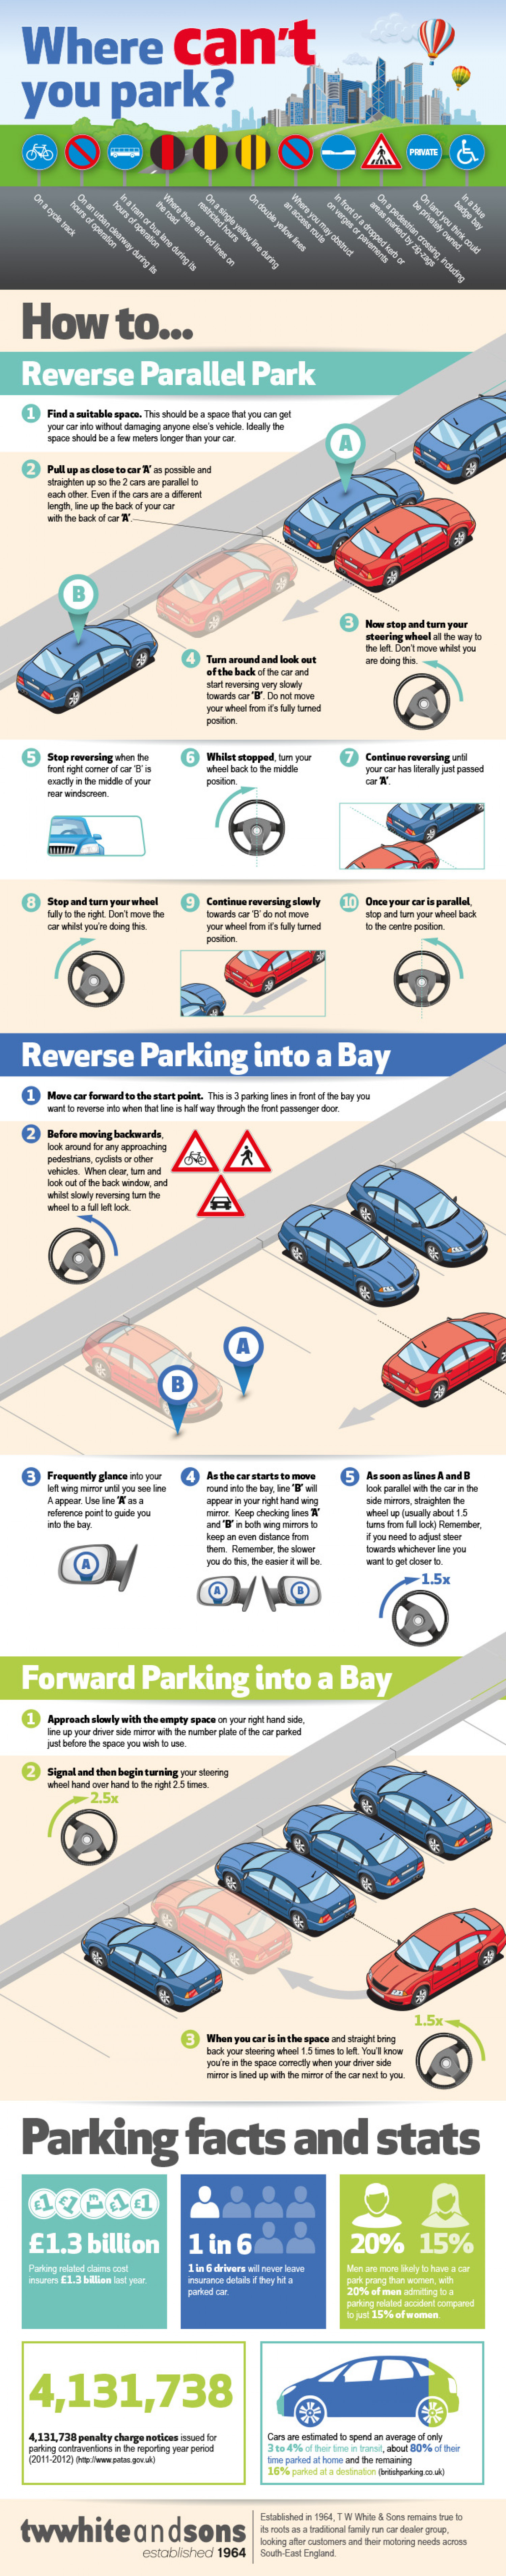 How to Park Infographic